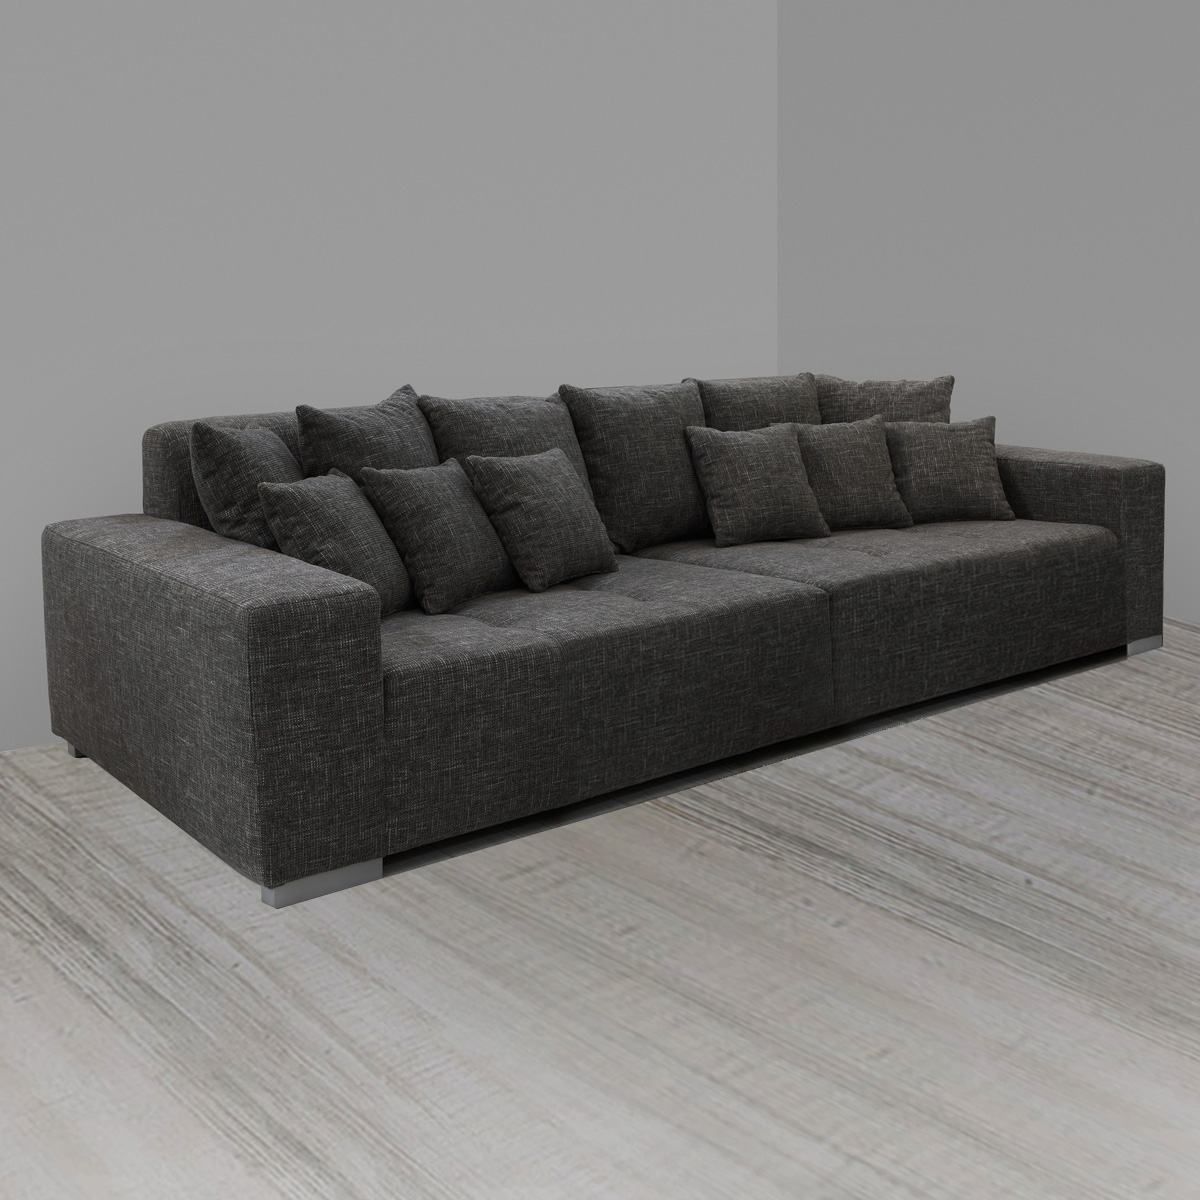 sofa hocker gulliver ecksofa mit hocker reduziert with sofa hocker awesome leder ecksofa mit. Black Bedroom Furniture Sets. Home Design Ideas